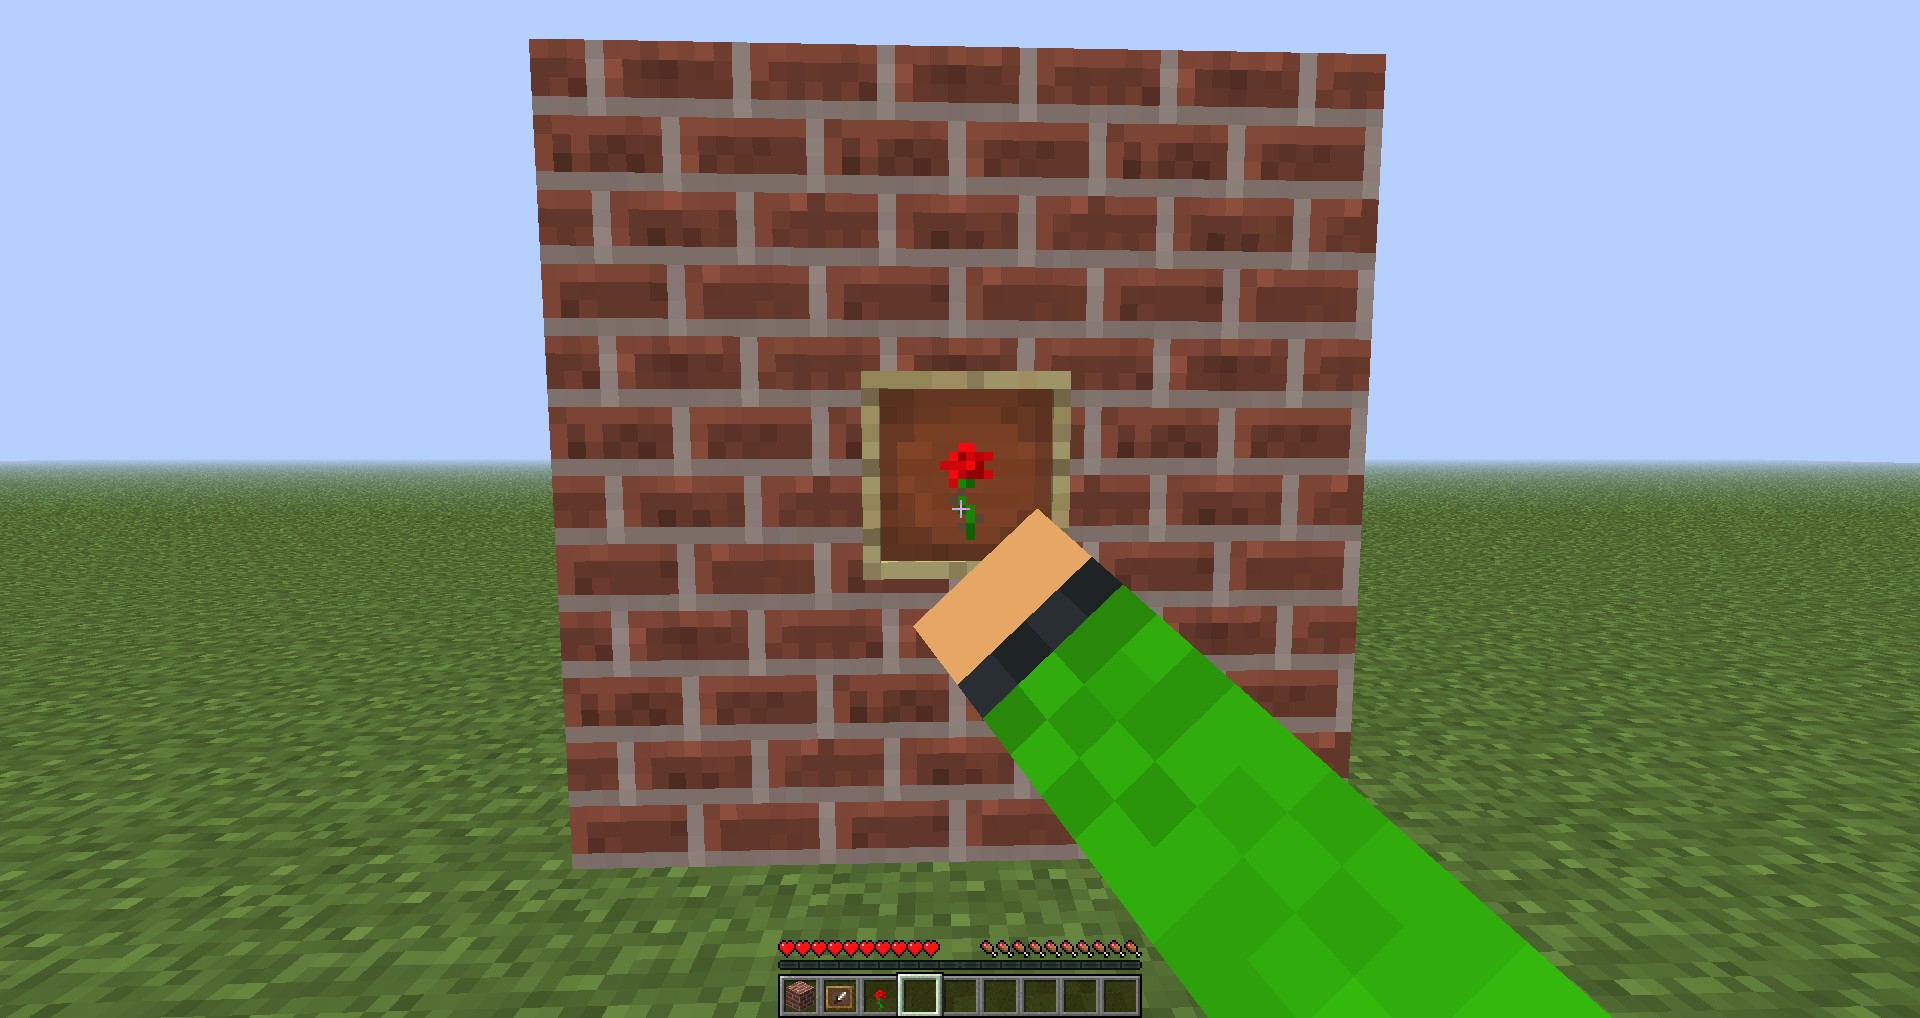 MC-579] Entities (paintings,item frames, minecarts) are breakable in ...